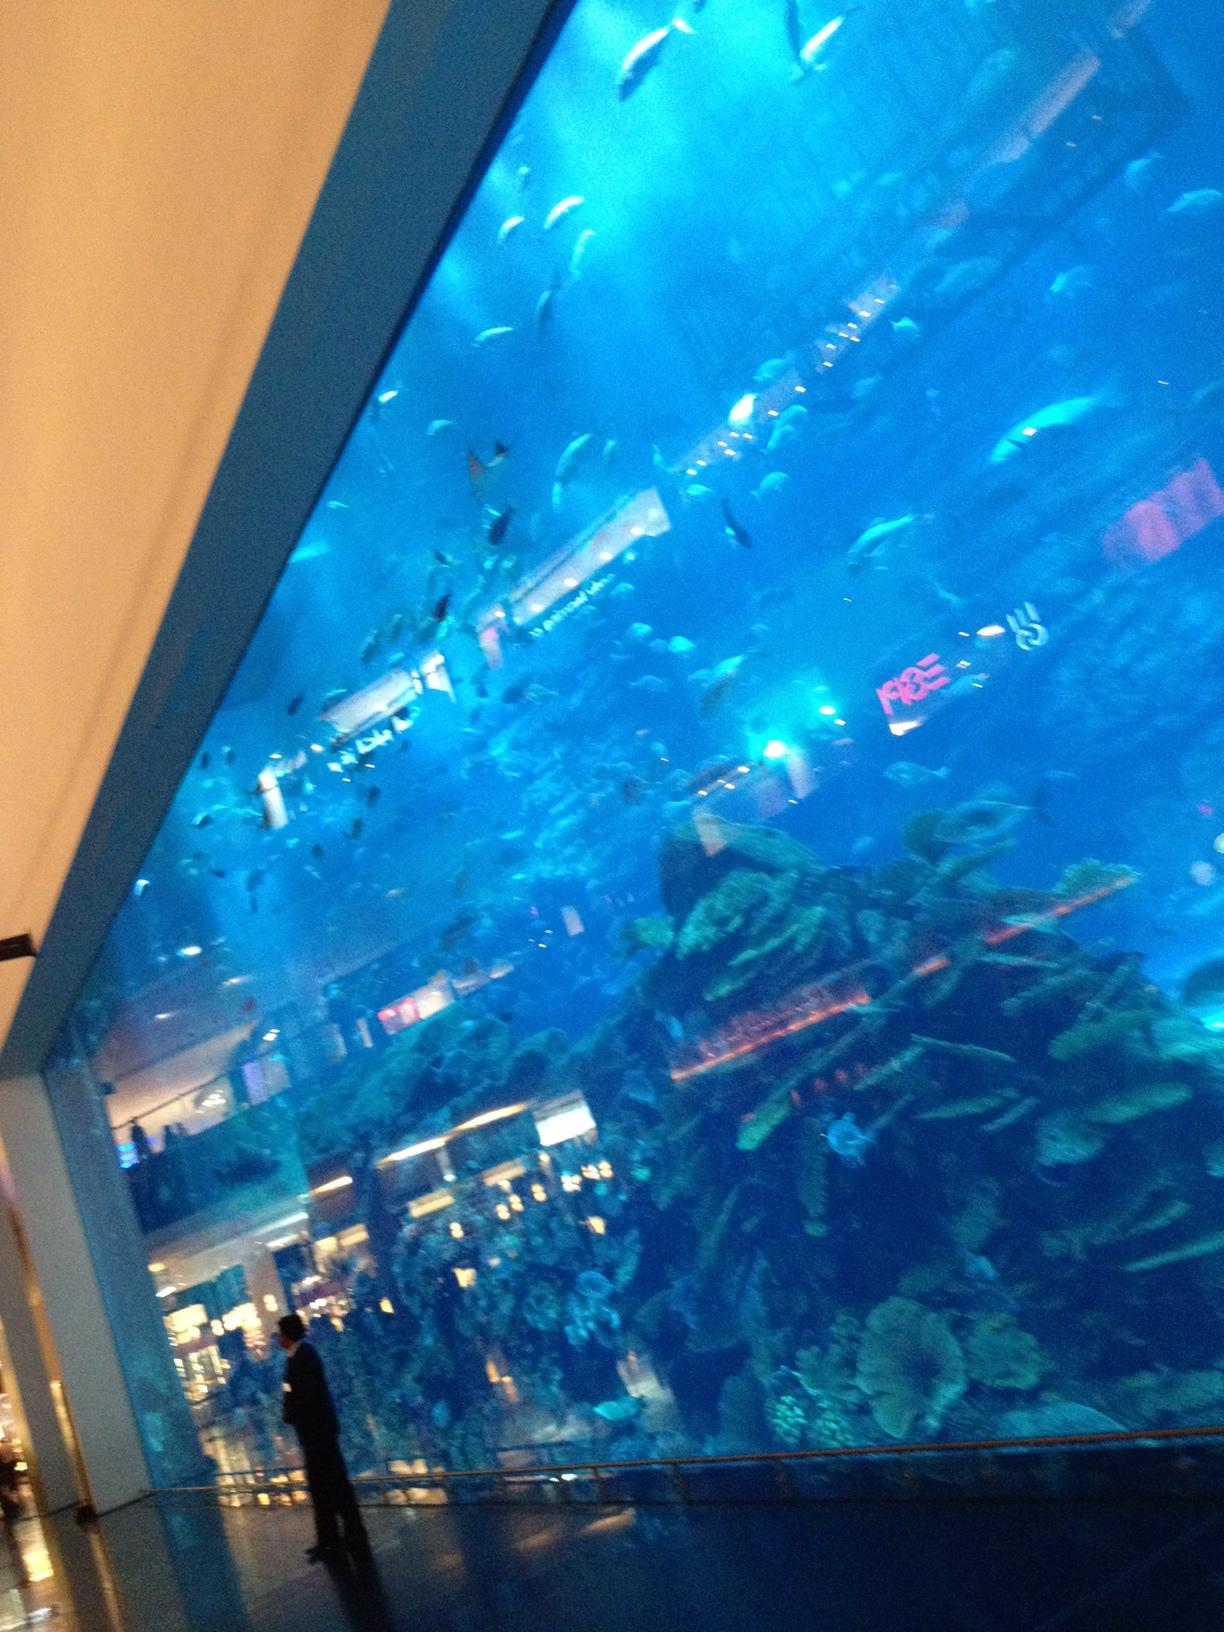 2nd largest aquarium in world zayed energy environment research center